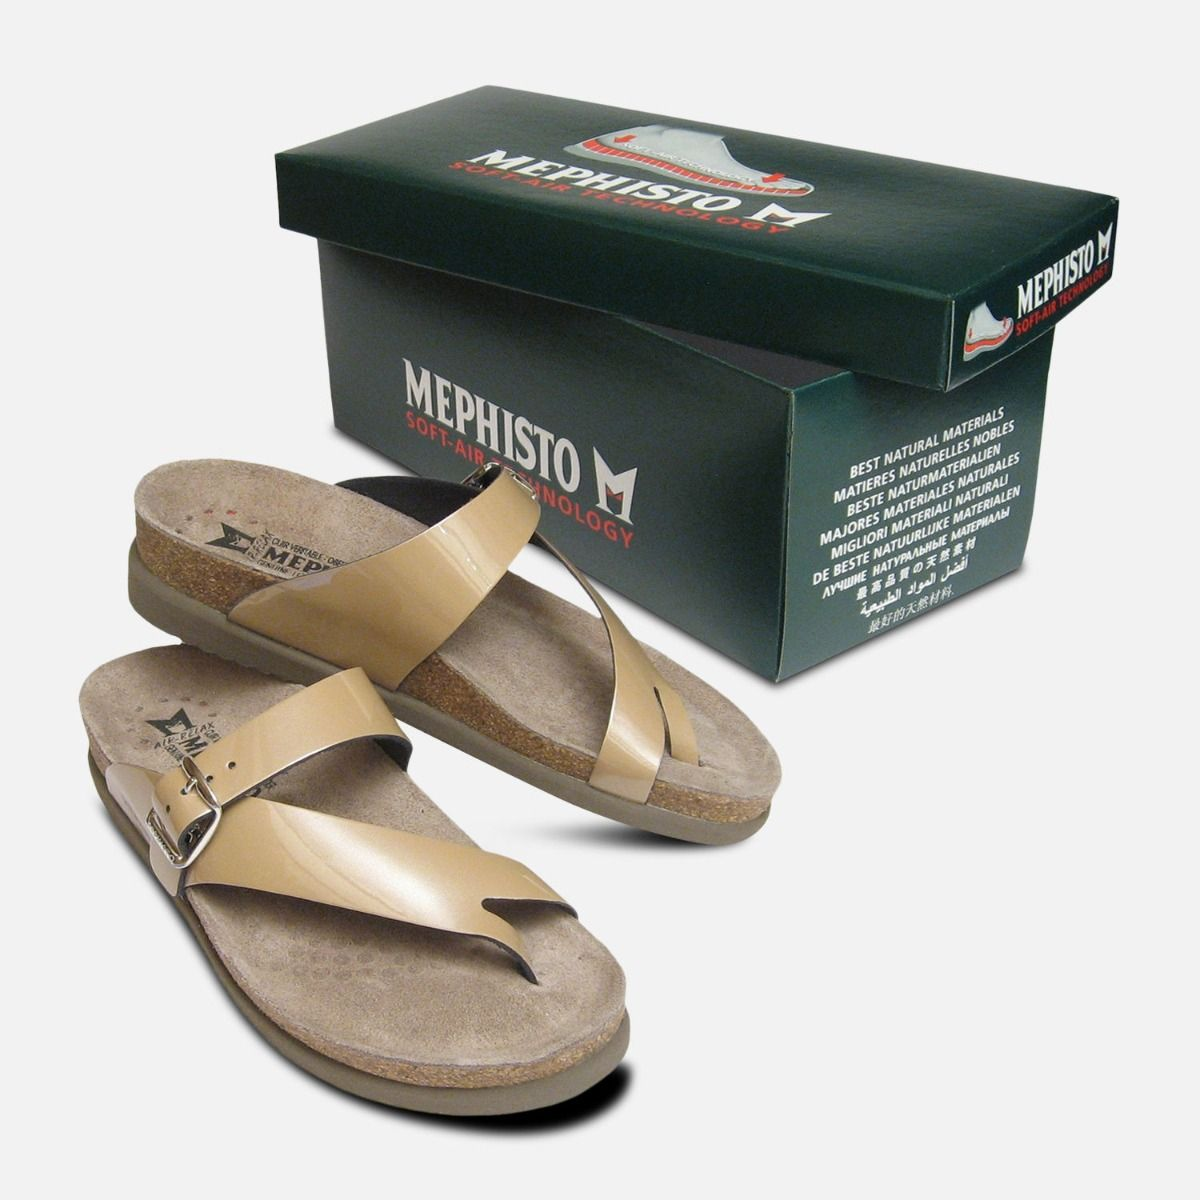 Patent Mephisto Sandals Leather Ladies Nude Helen In f6gb7myIYv